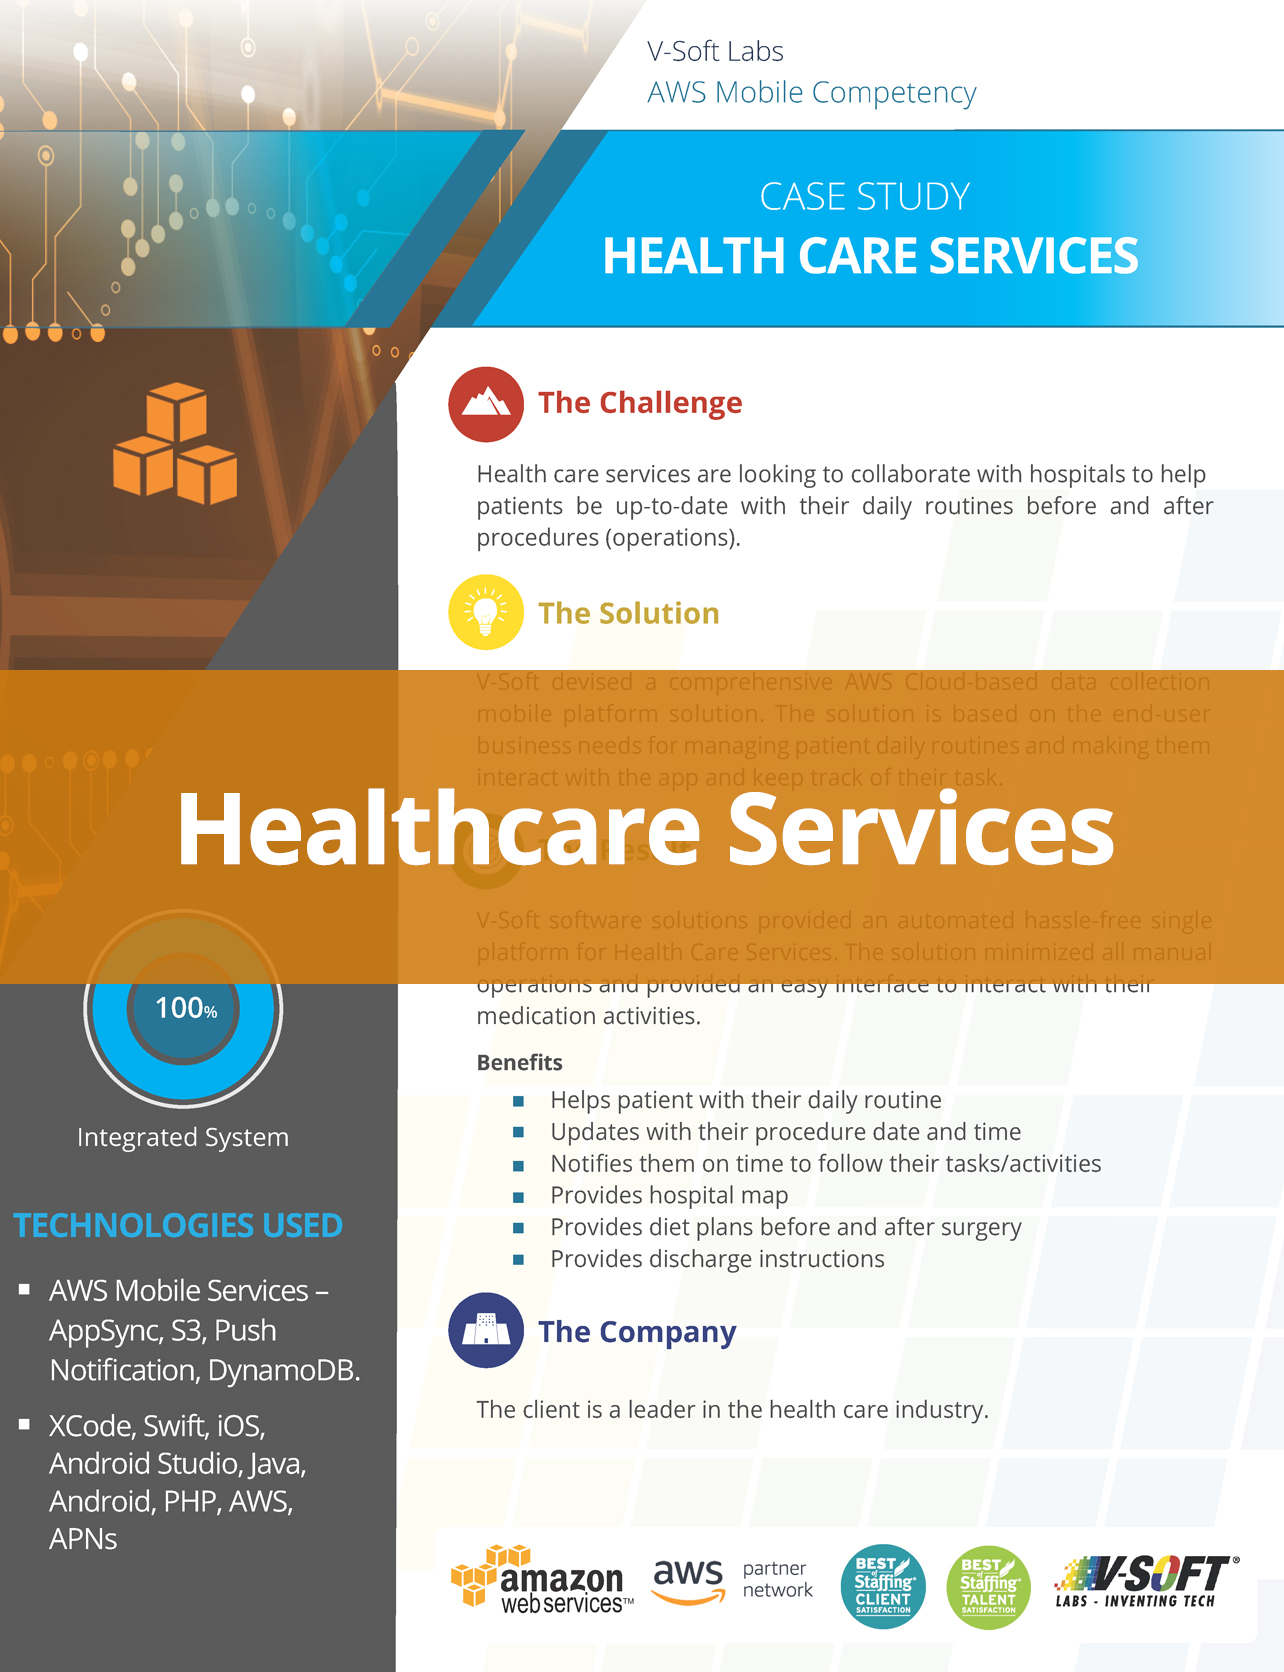 Health Care Services Case Study